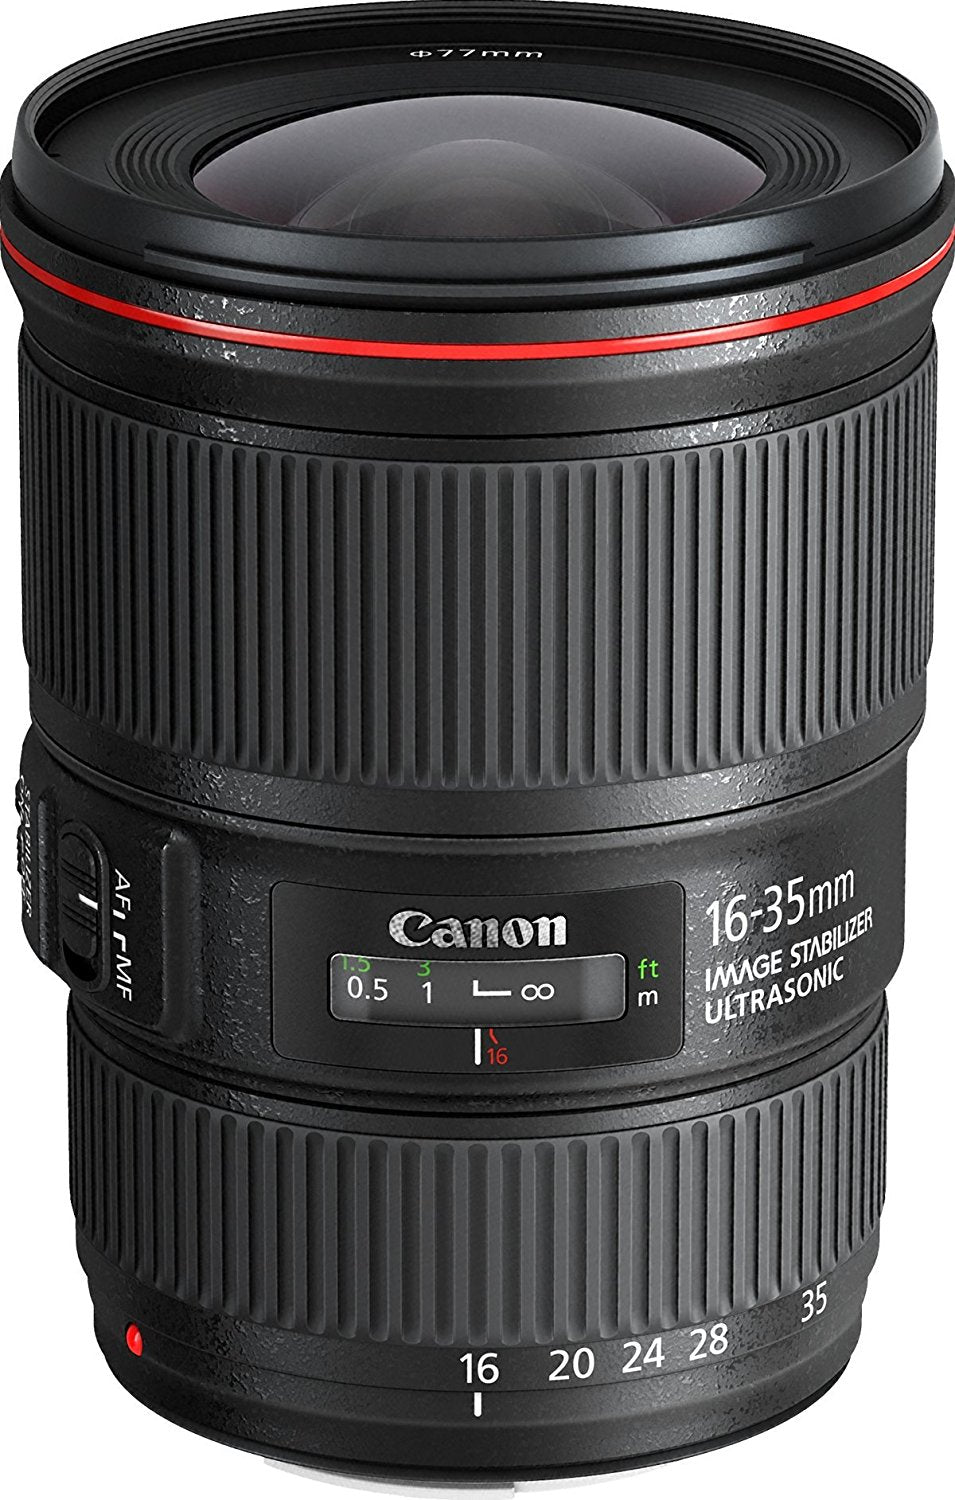 Canon EF 16-35mm F2.8L IS USM